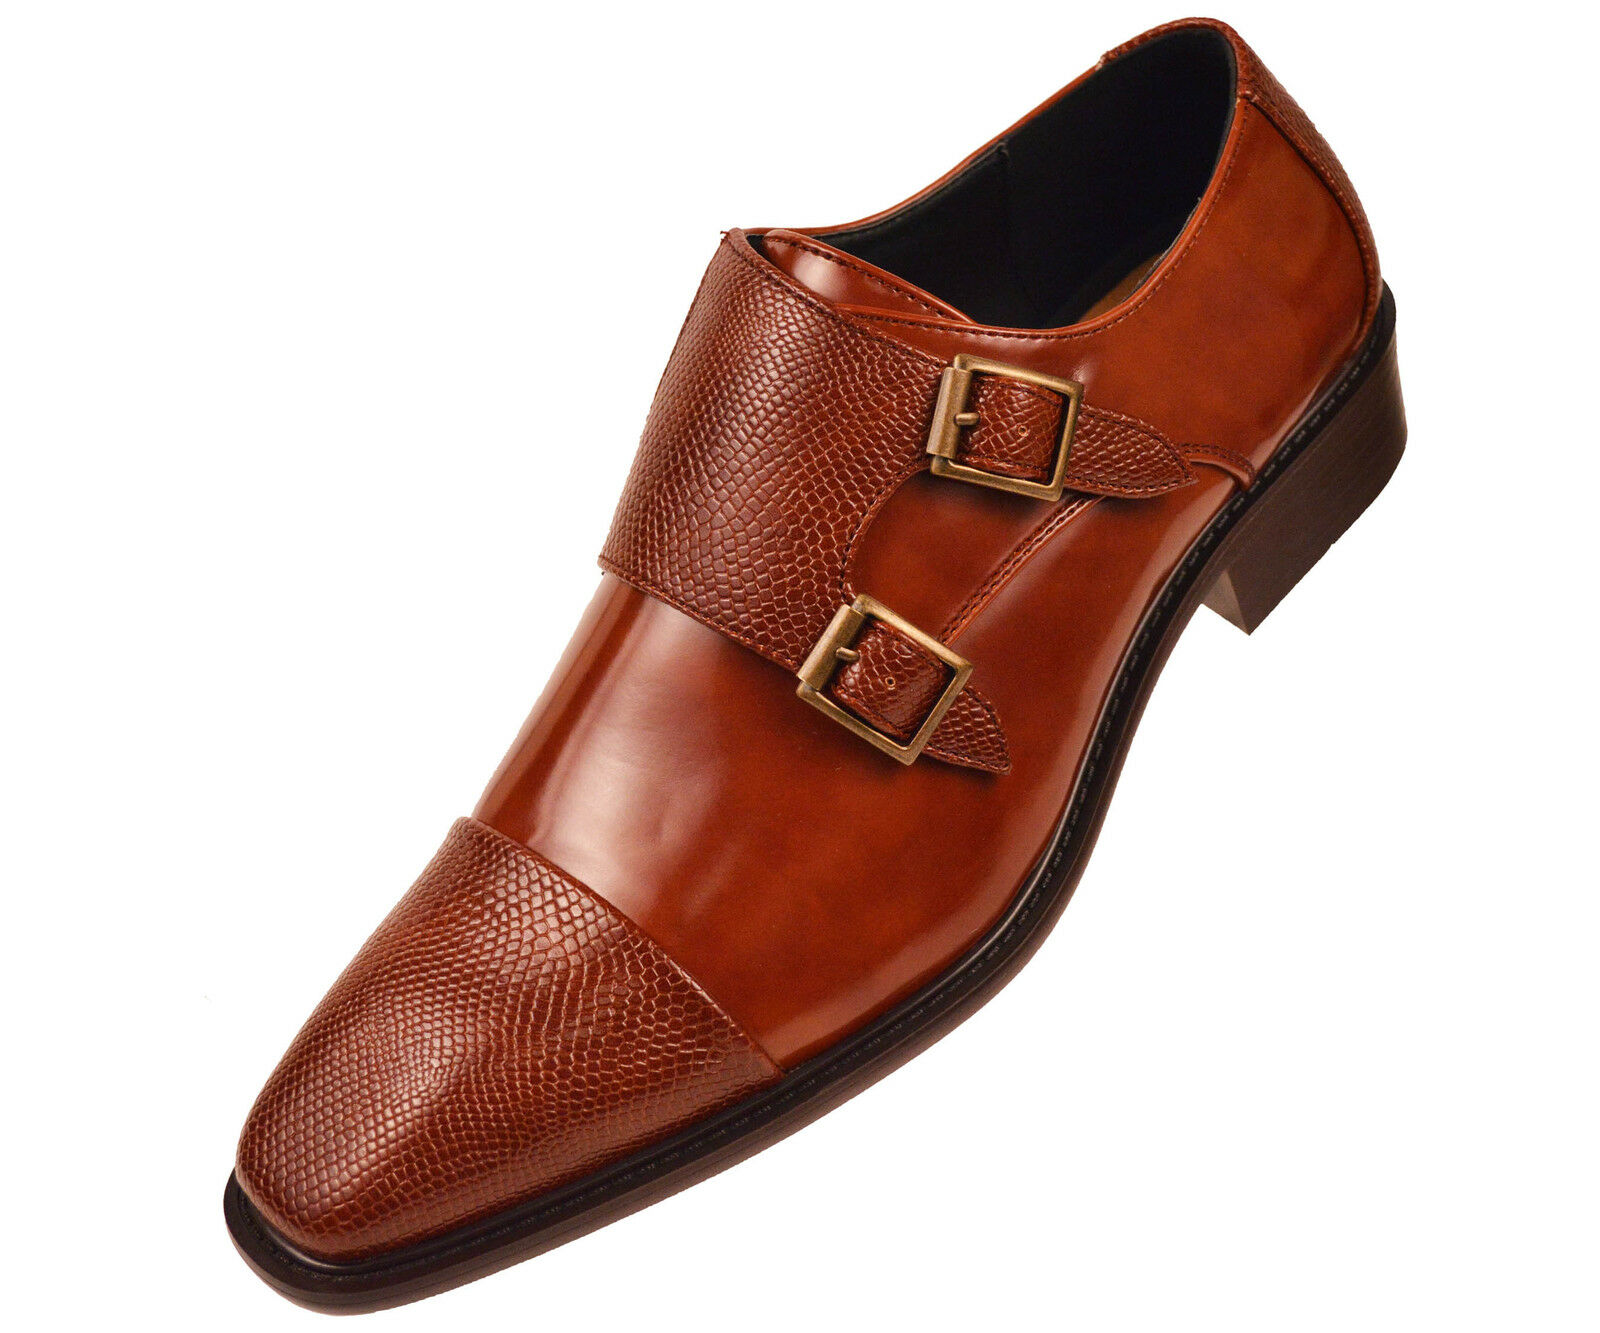 Bolano Uomo Cognac Brown Double Monk Strap Dress Shoe Pebble Emboss Bancroft-215